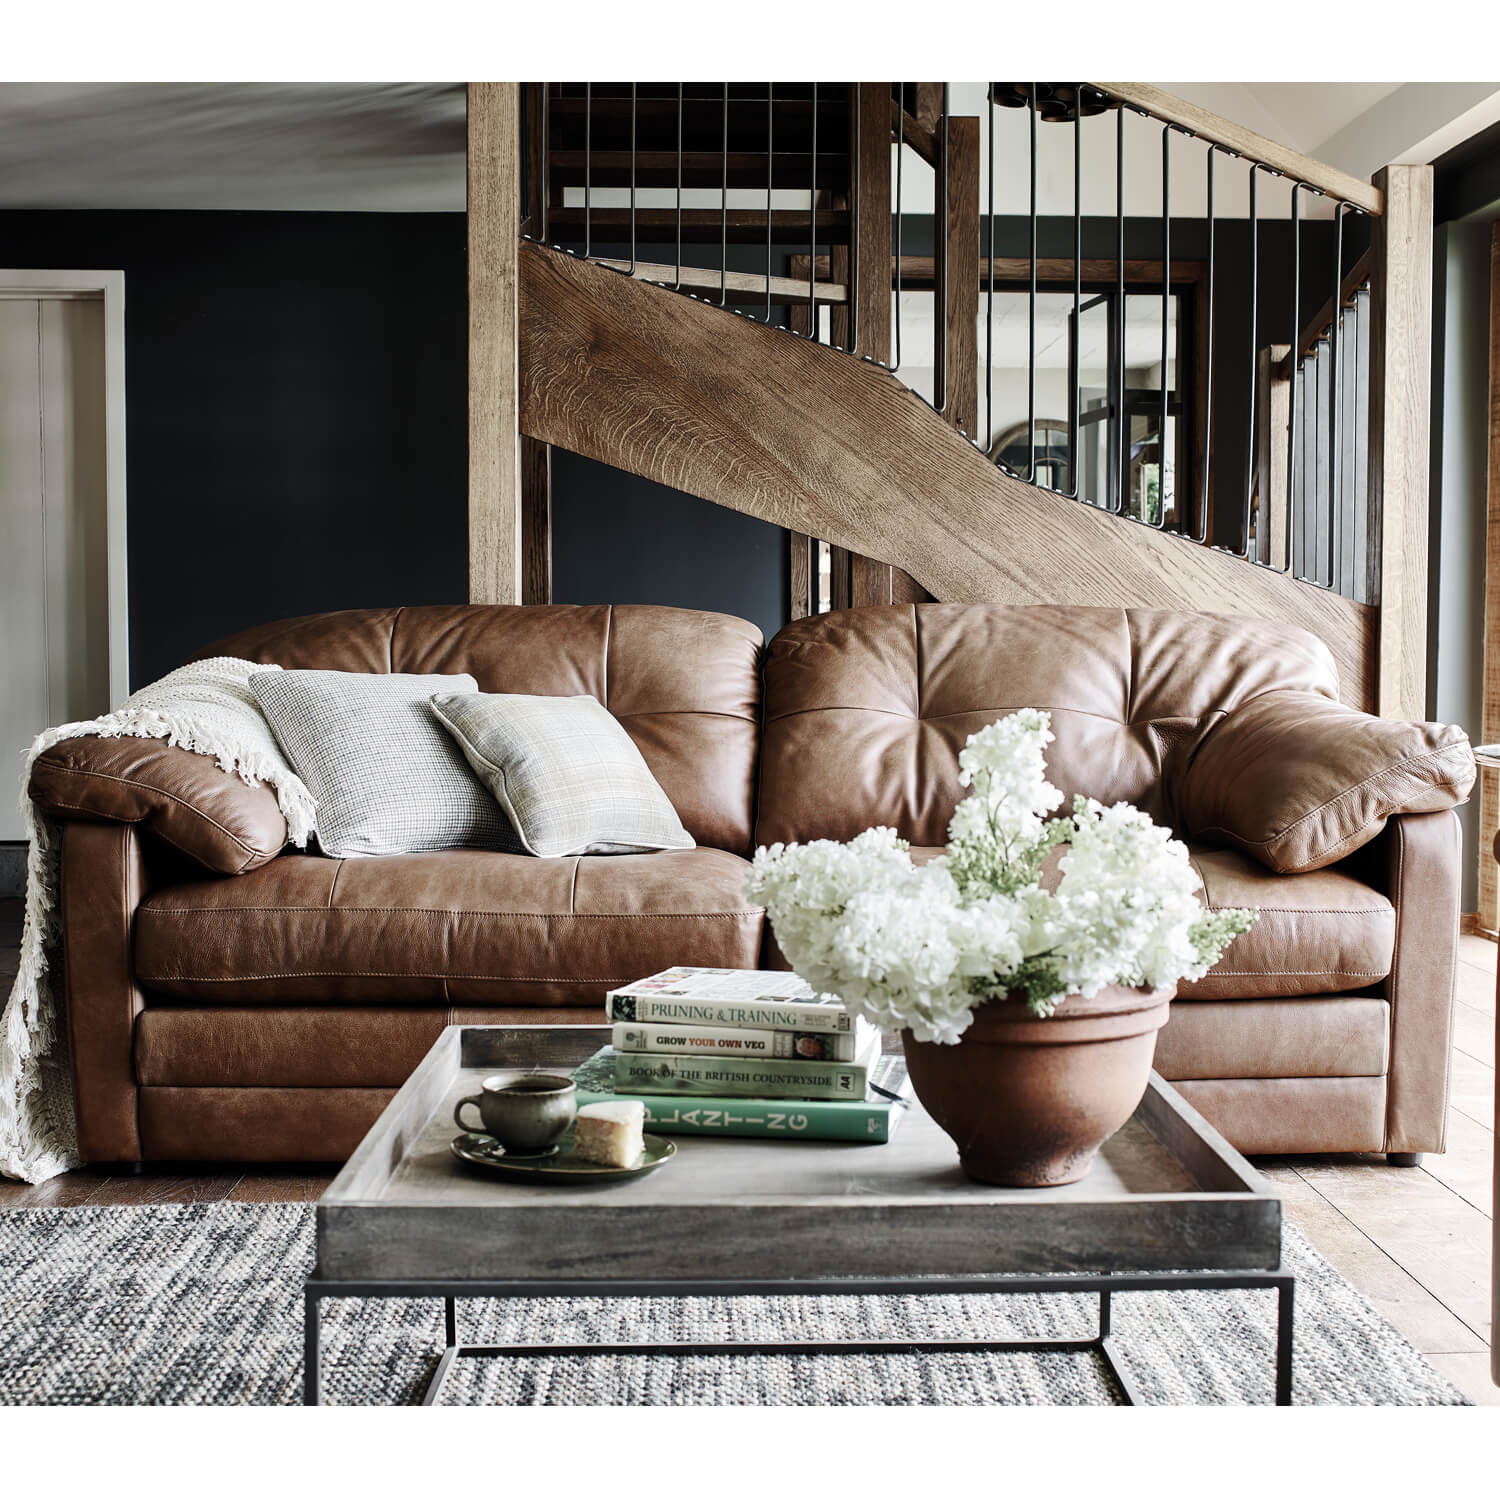 Image of Alexander & James Bailey 3 Seater Leather Sofa